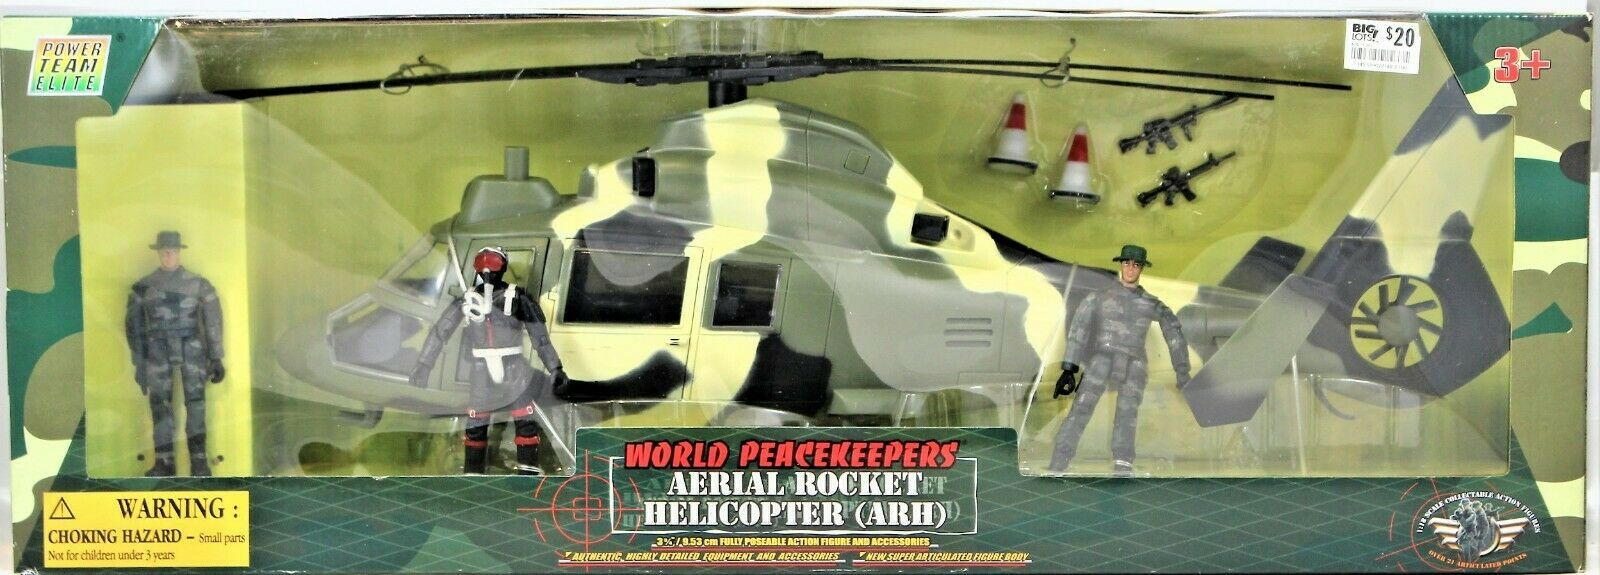 World Peacekeepers Power Team Elite Aerial Rocket Helicopter (ARH) 1:18 Scale